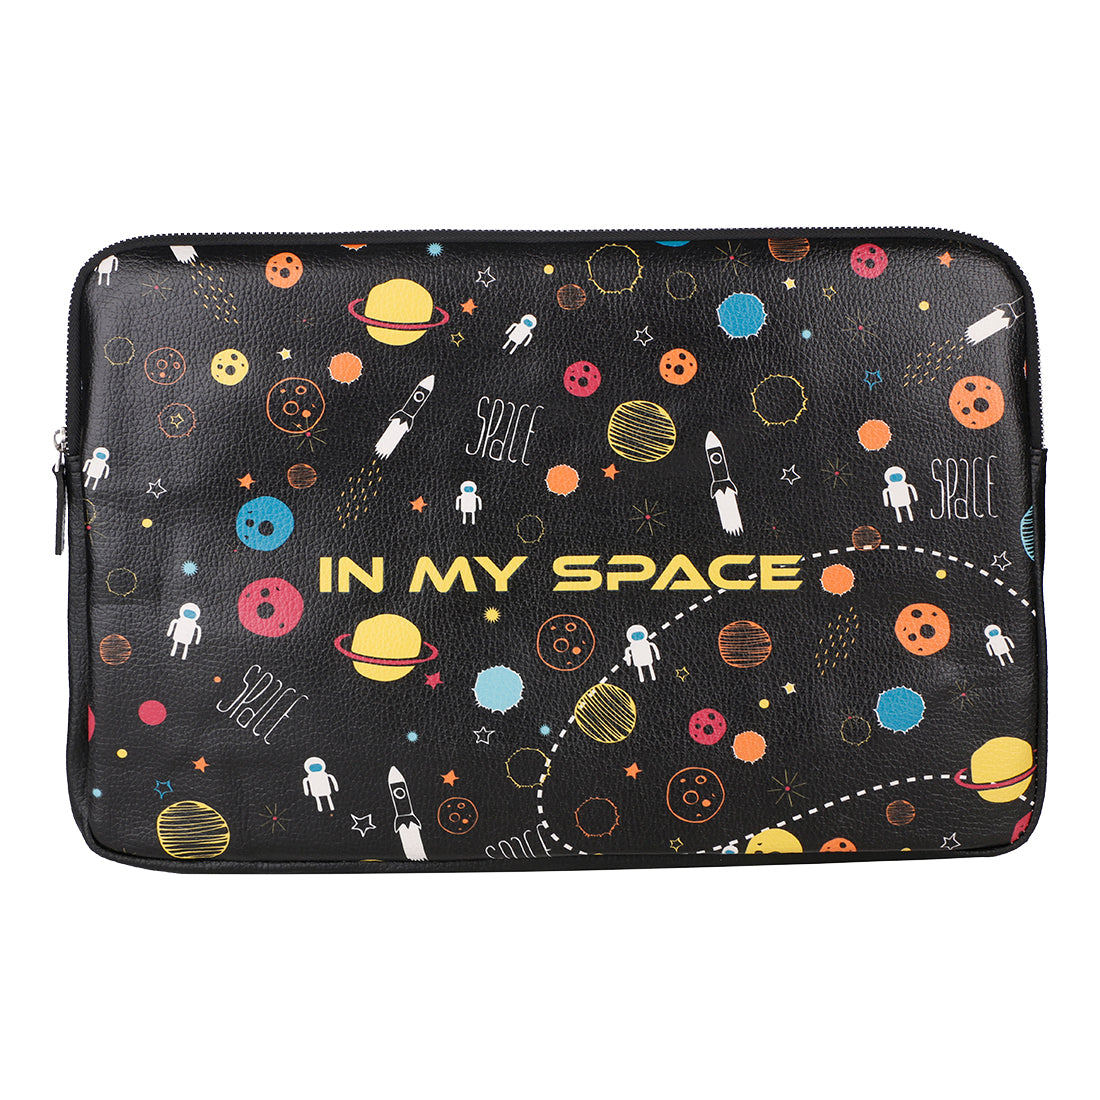 "In My Space 15"" Laptop Sleeve"